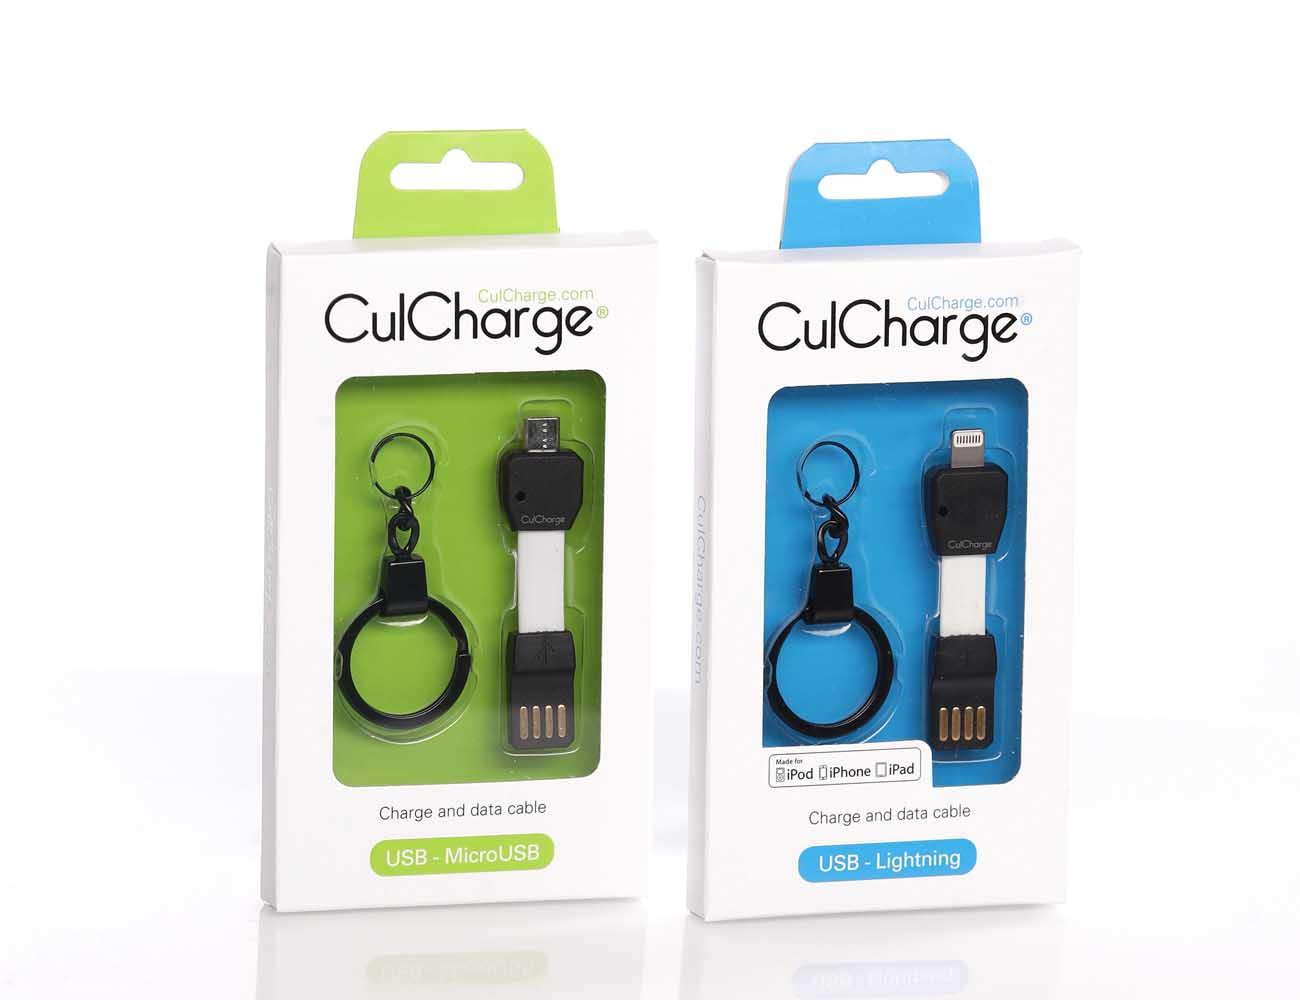 CulCharge USB Cable